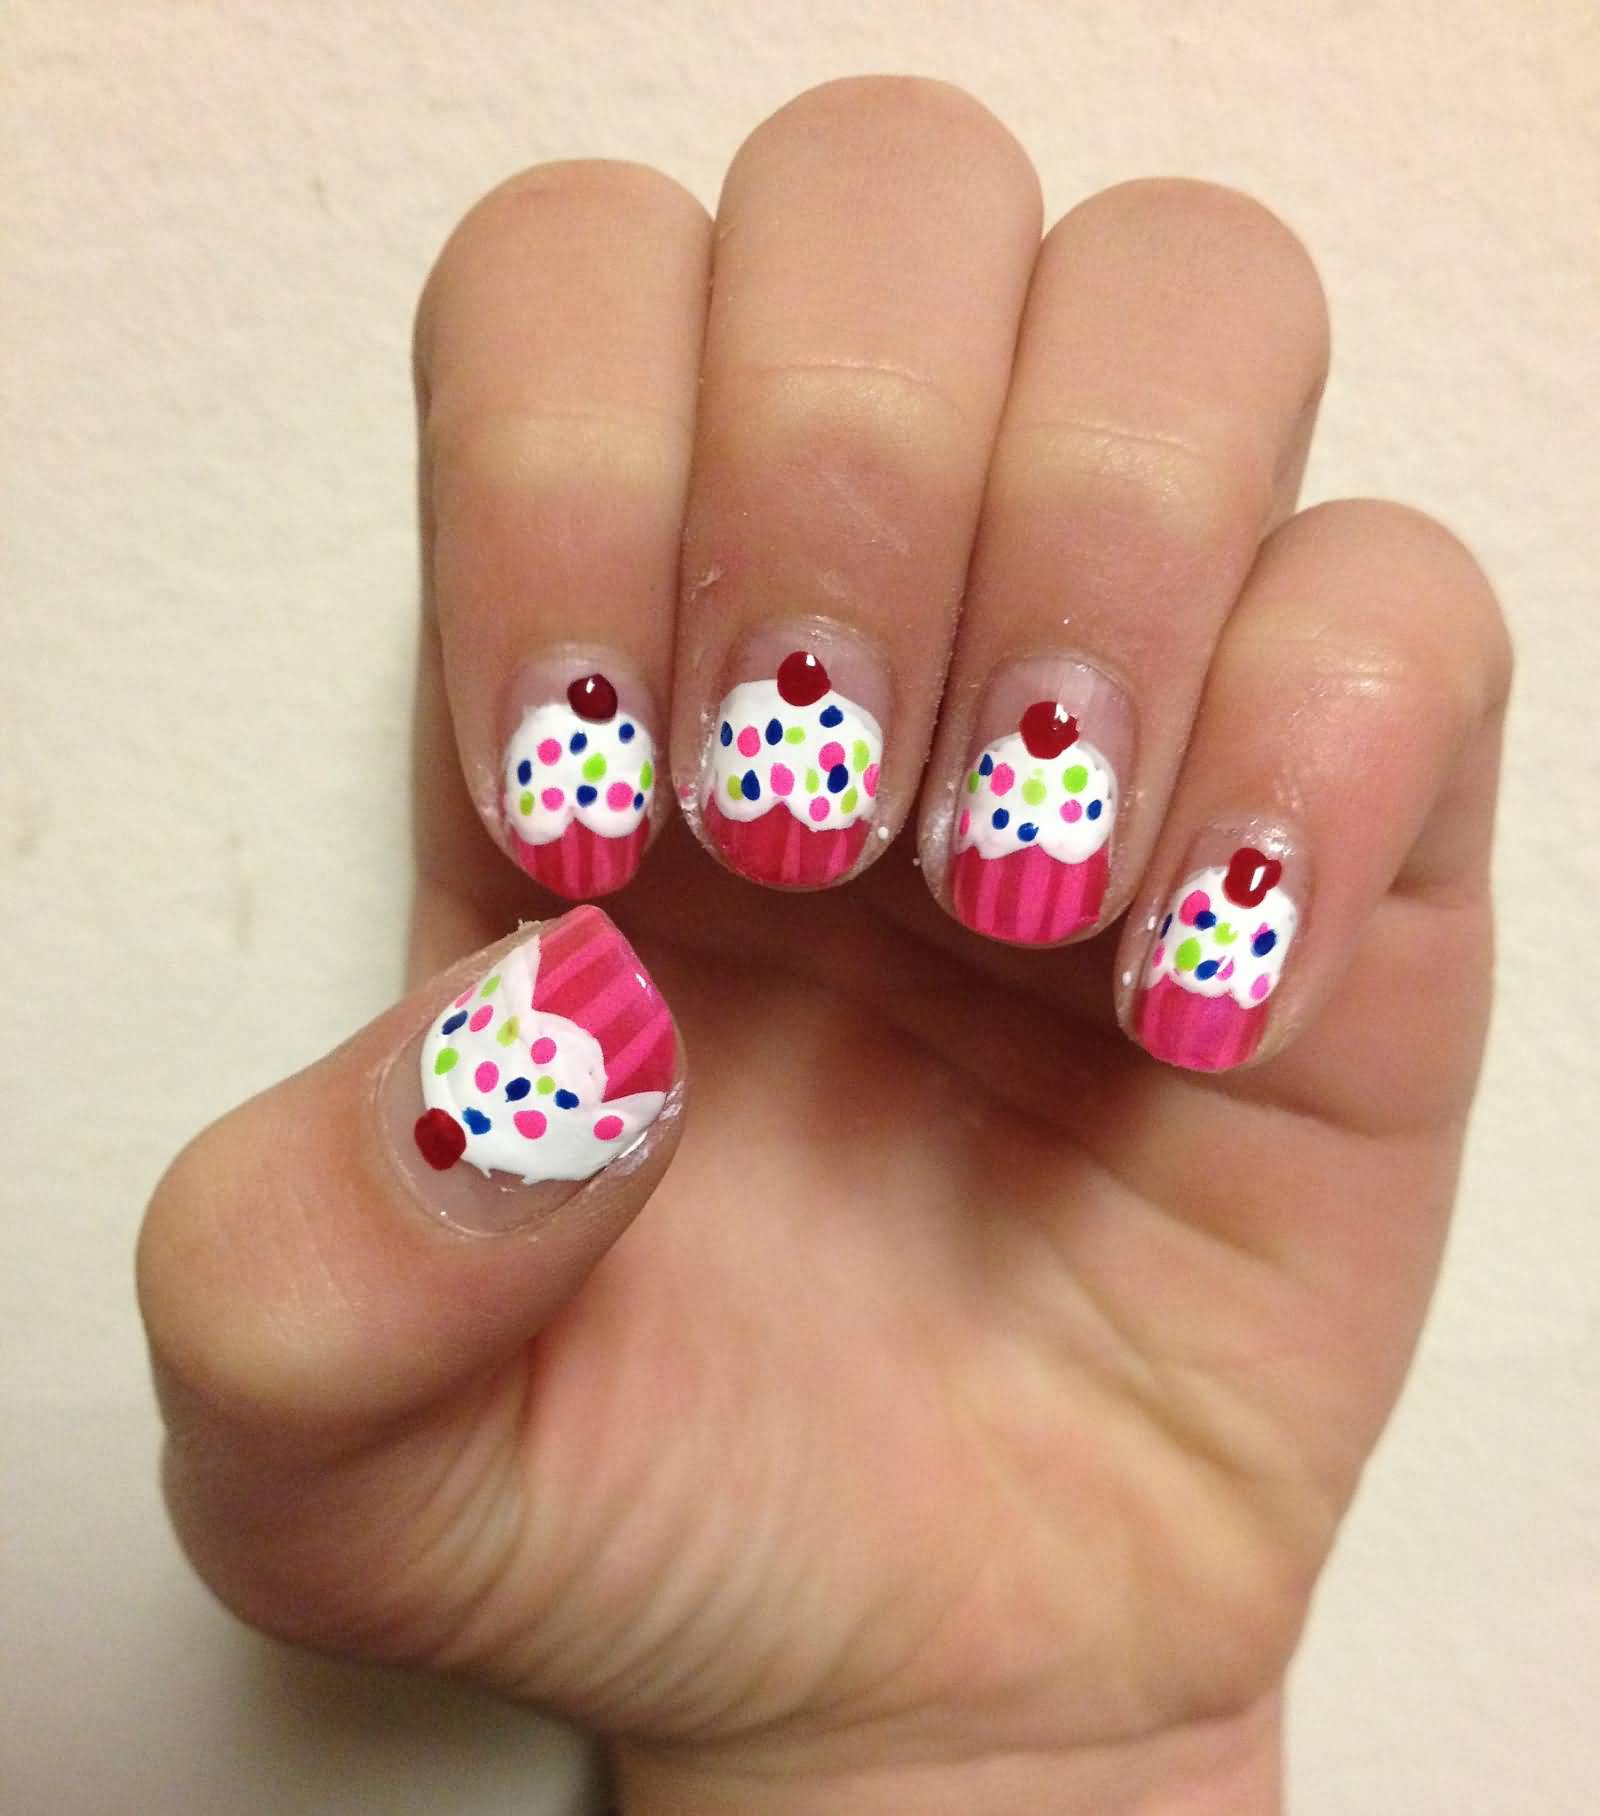 Cute Nail Art Designs For Girls